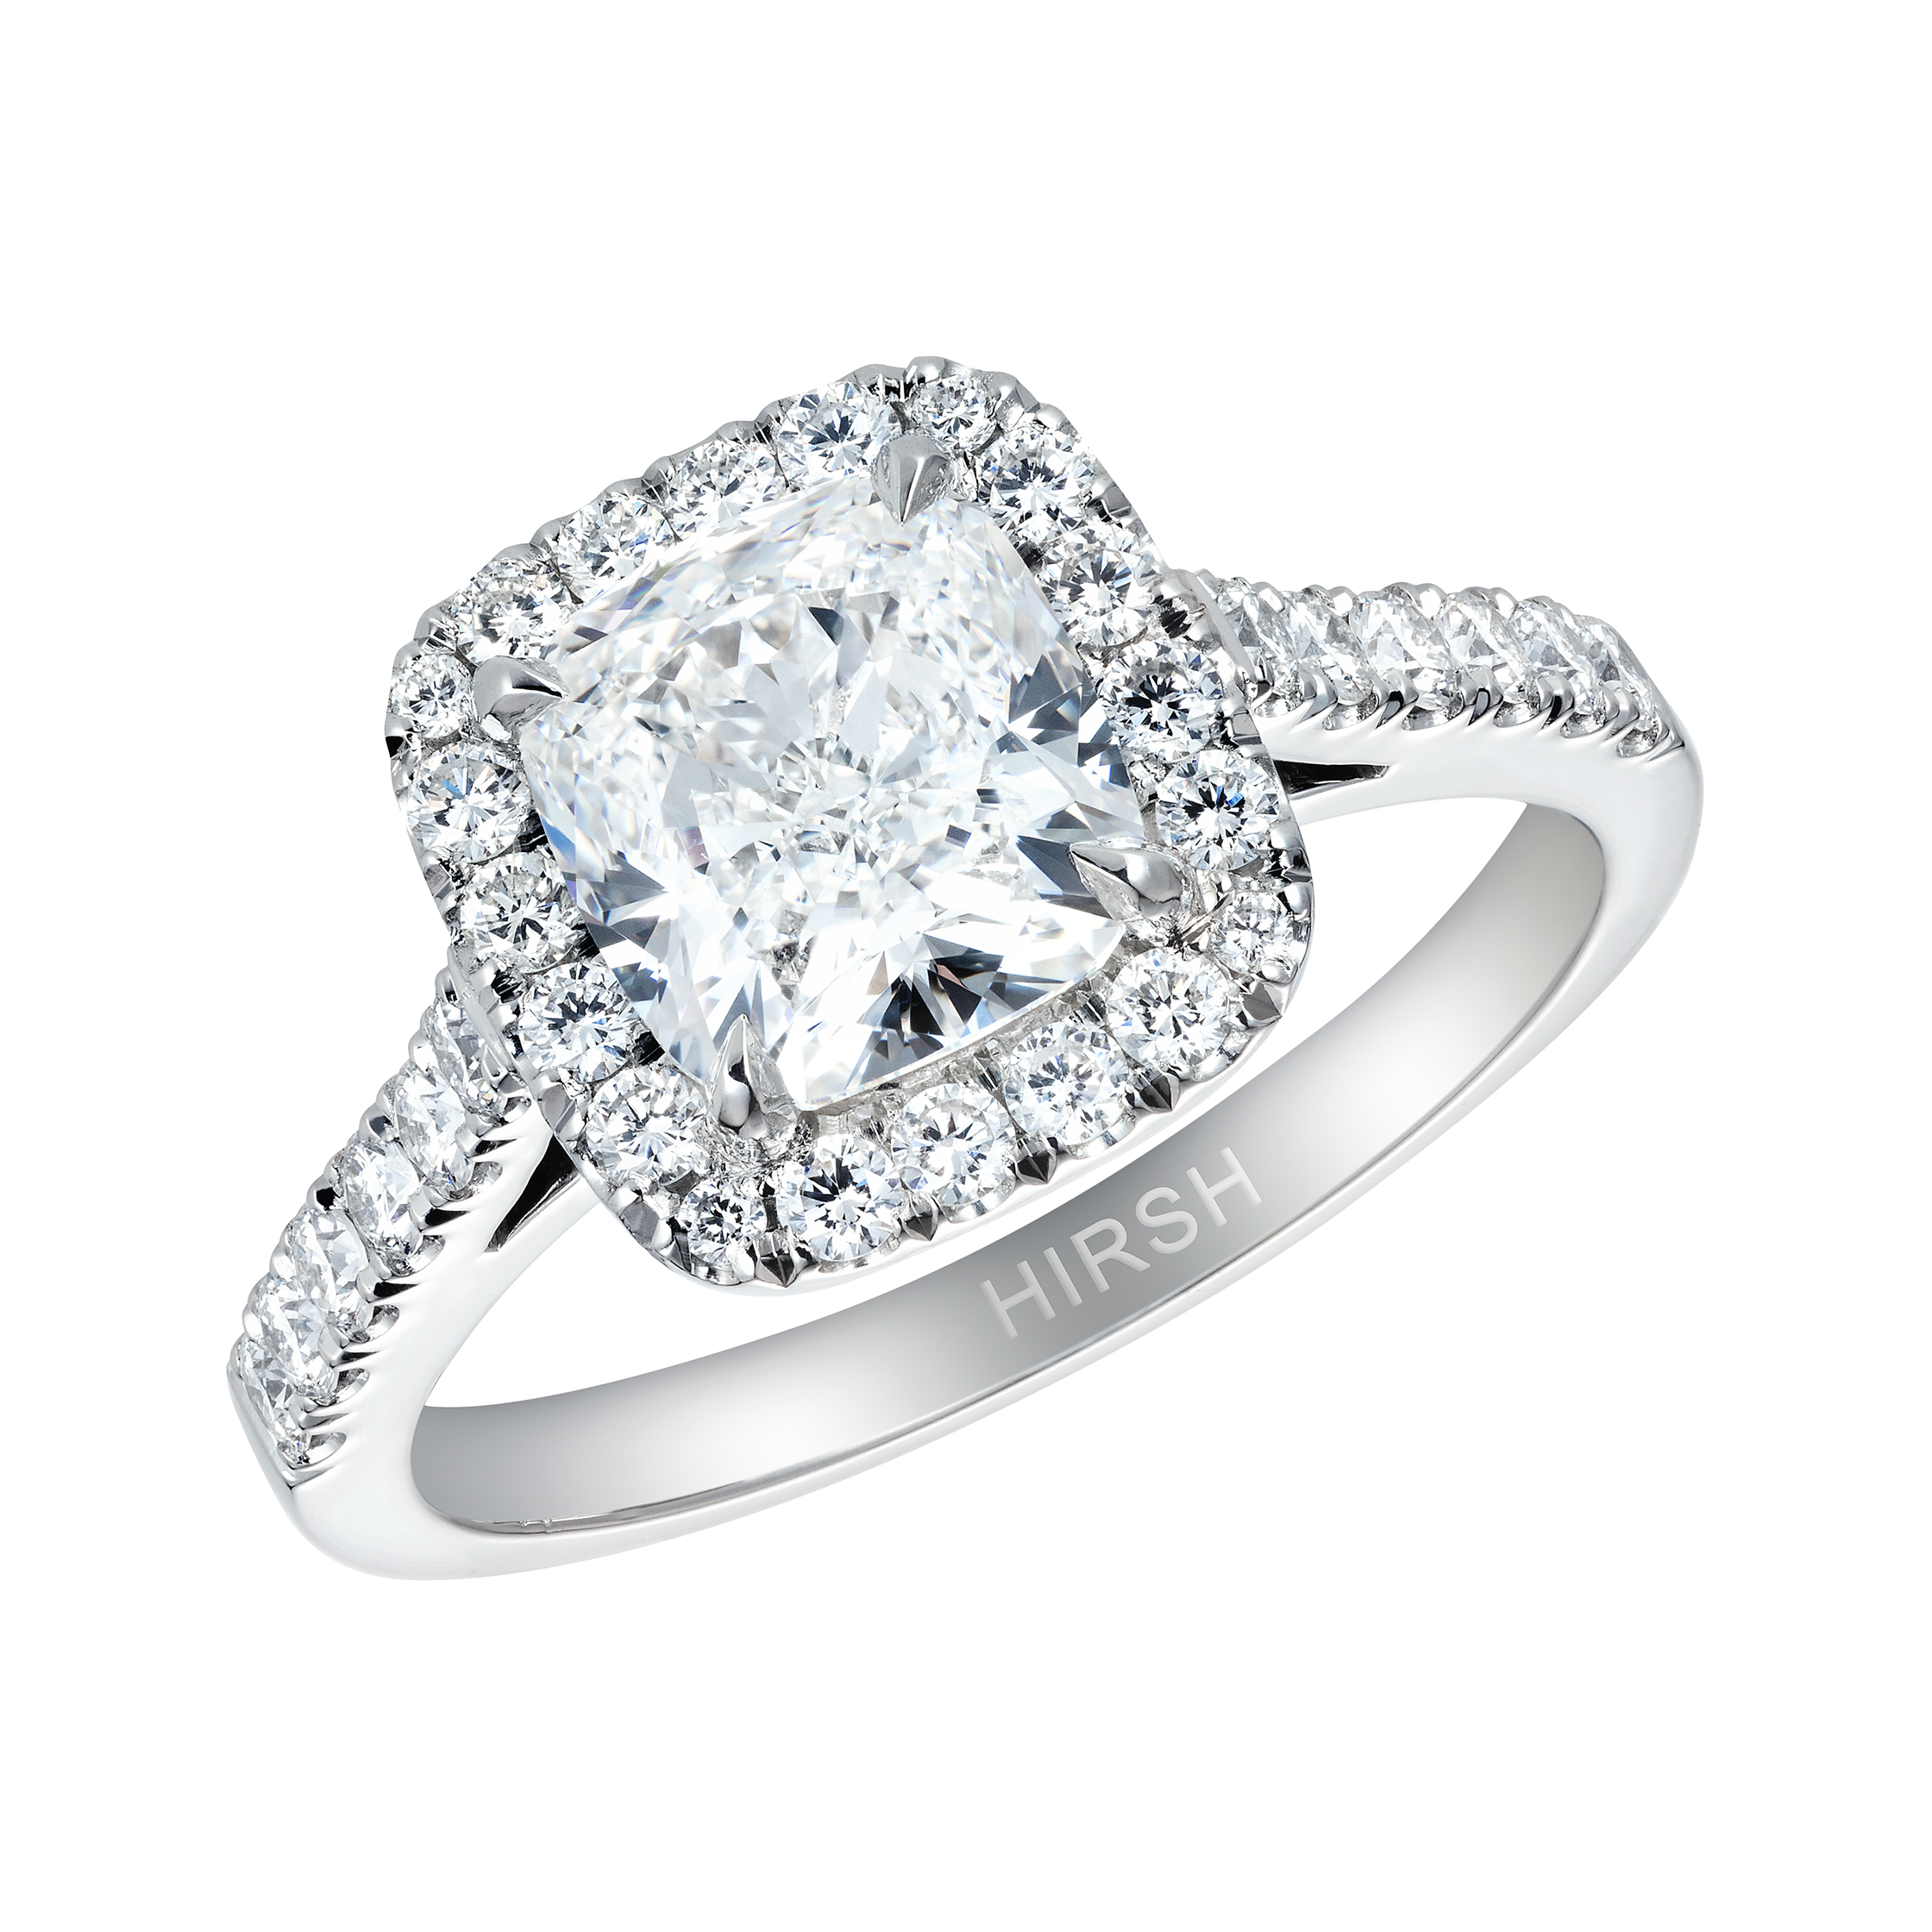 carat ct gia real cusion excellent original certified cushion diamond j cut image diamonds